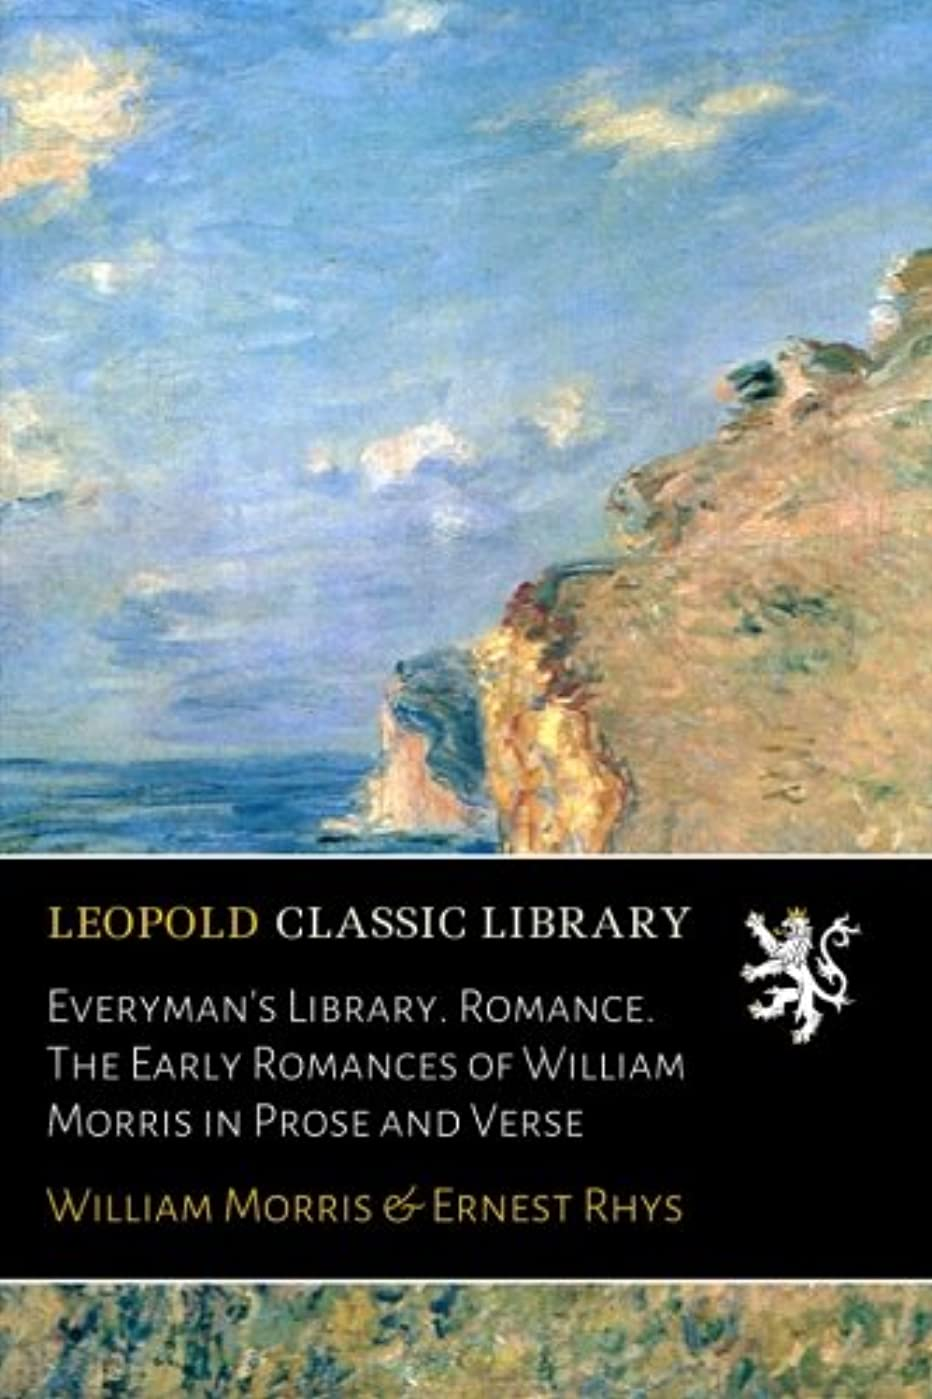 Everyman's Library. Romance. The Early Romances of William Morris in Prose and Verse